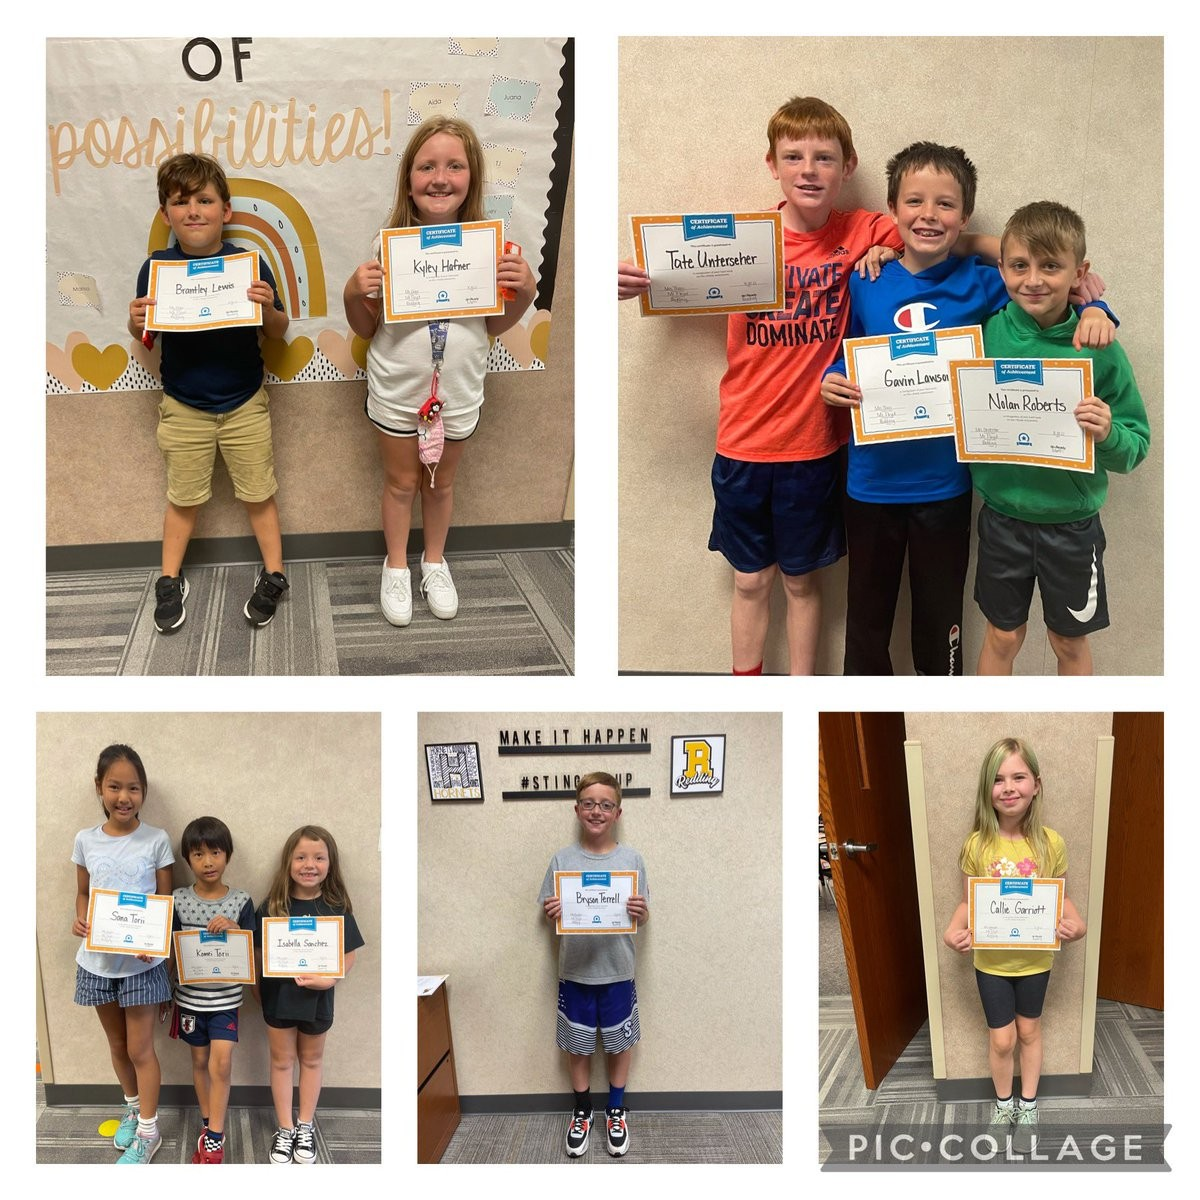 Today we recognized our top performers on the iReady Reading and Math Diagnostic with a certificate and candy! We are proud of their hard work and all our students hard work on their iReady Tests! Keep it up Hornets!  @CurriculumAssoc #stingersup #strive pic.twitter.com/LXD2Yz9ecH